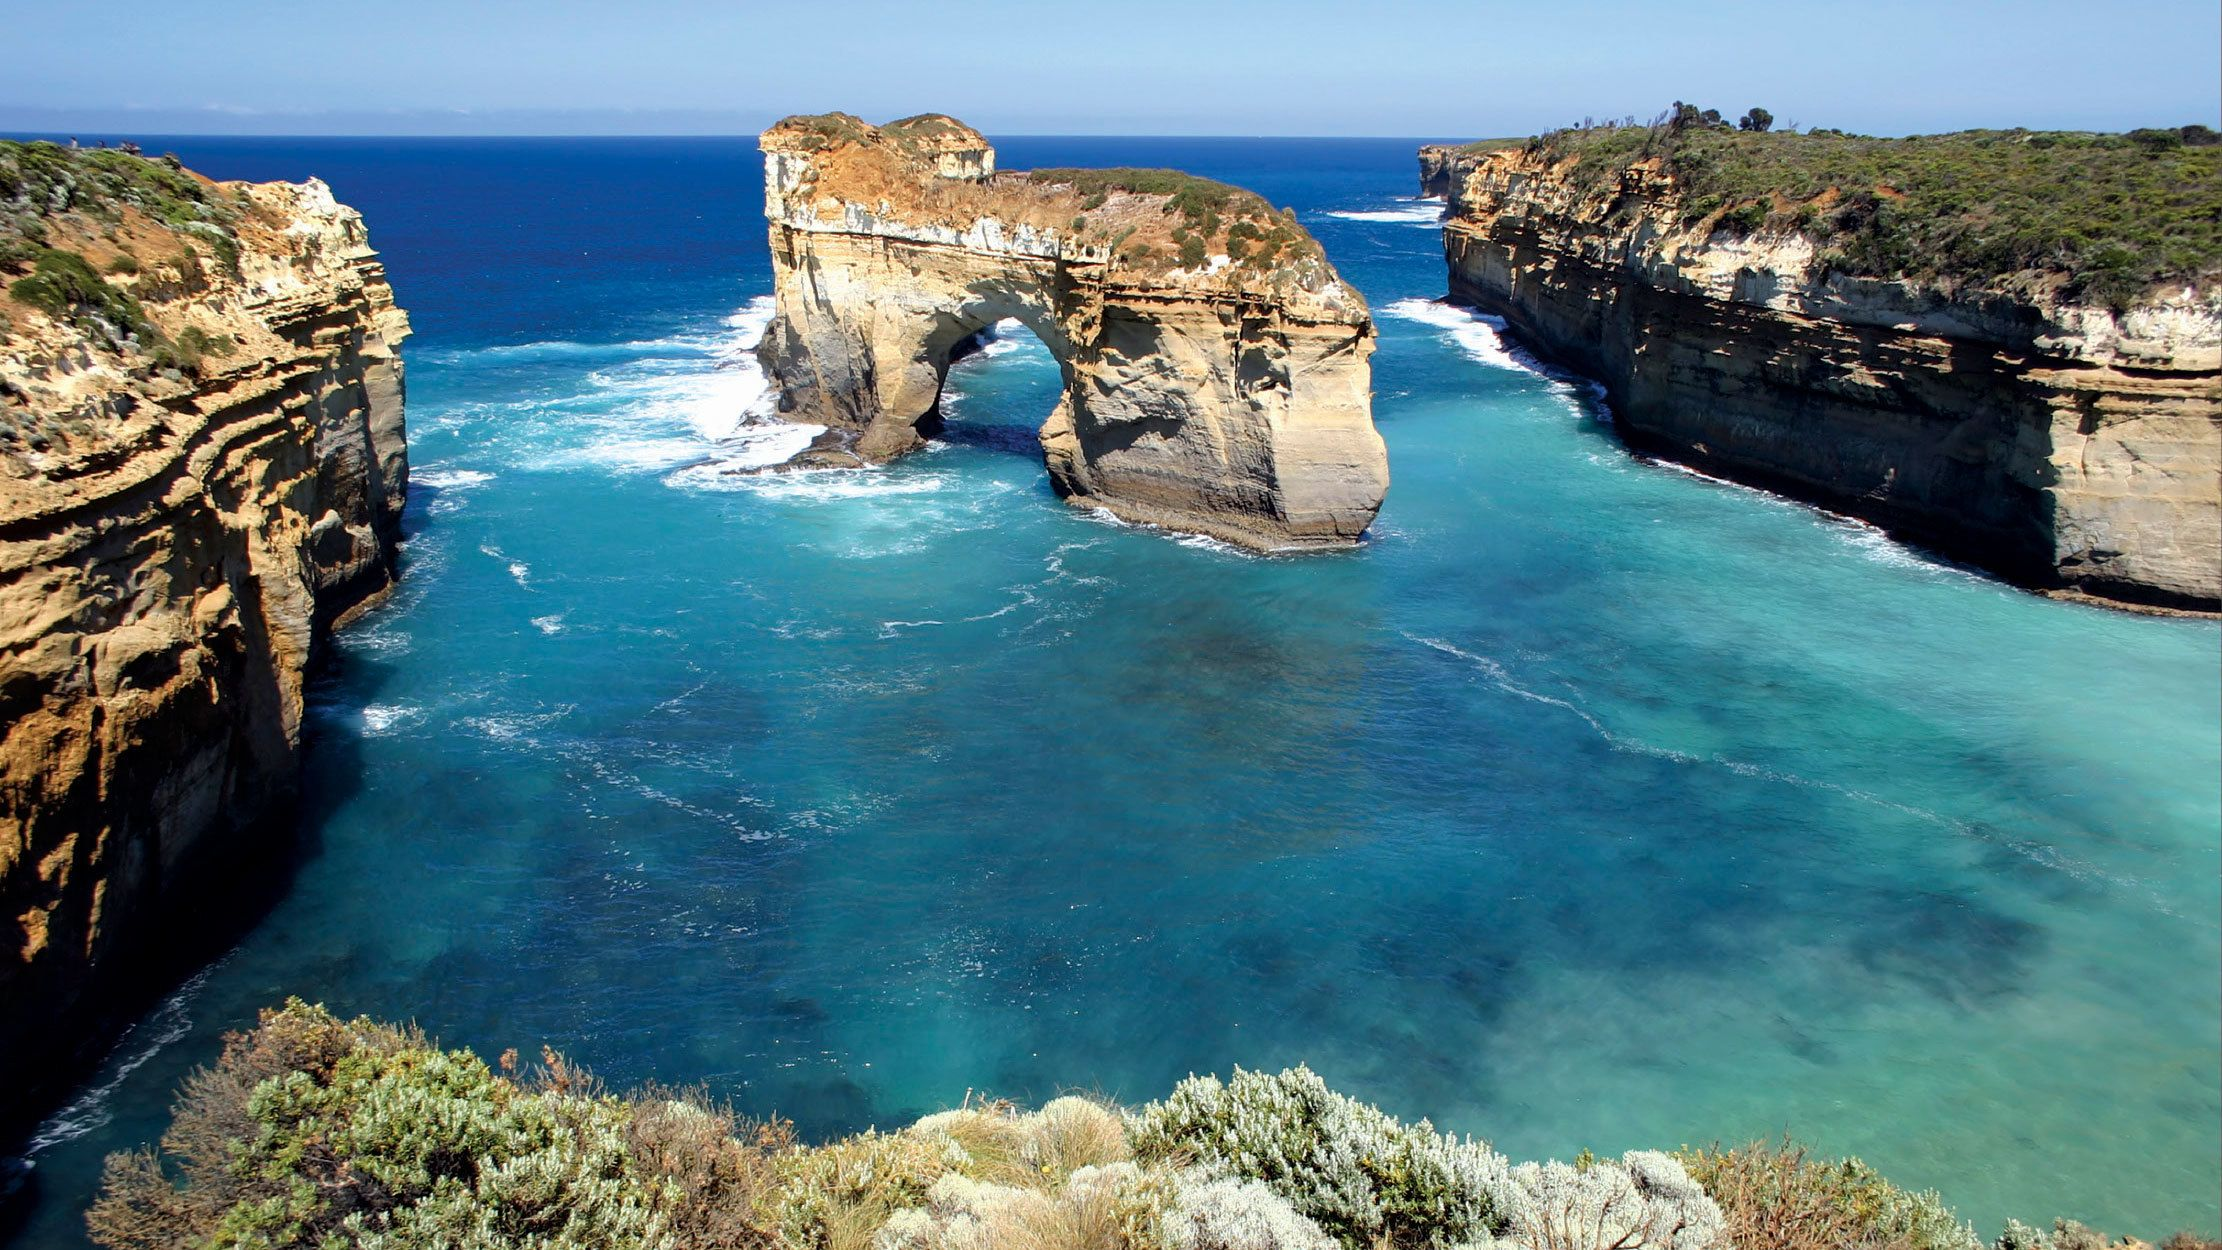 Naturally formed rock archway in the water in Australia